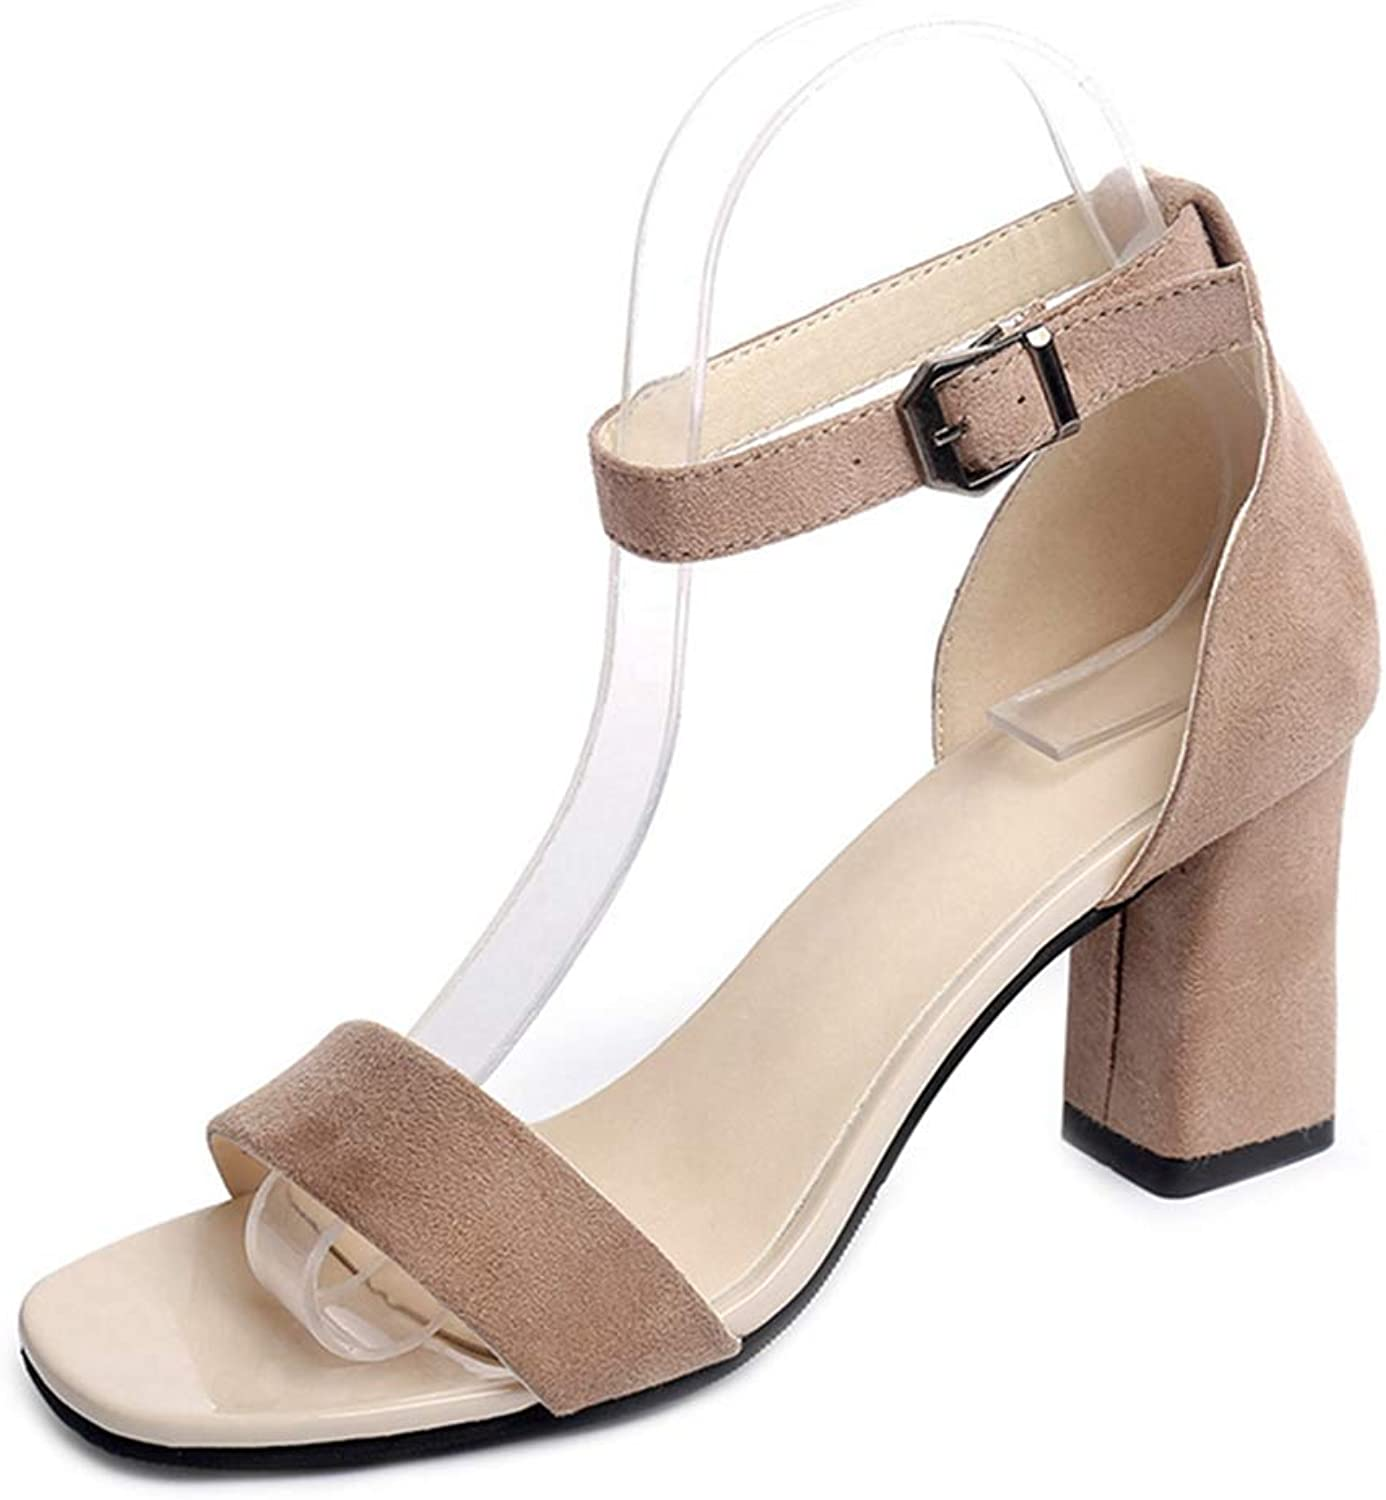 Ladies shoes Thick High Heel Sandal Party Women's Square Heels Ankle Strap Summer Open Toe Sandals